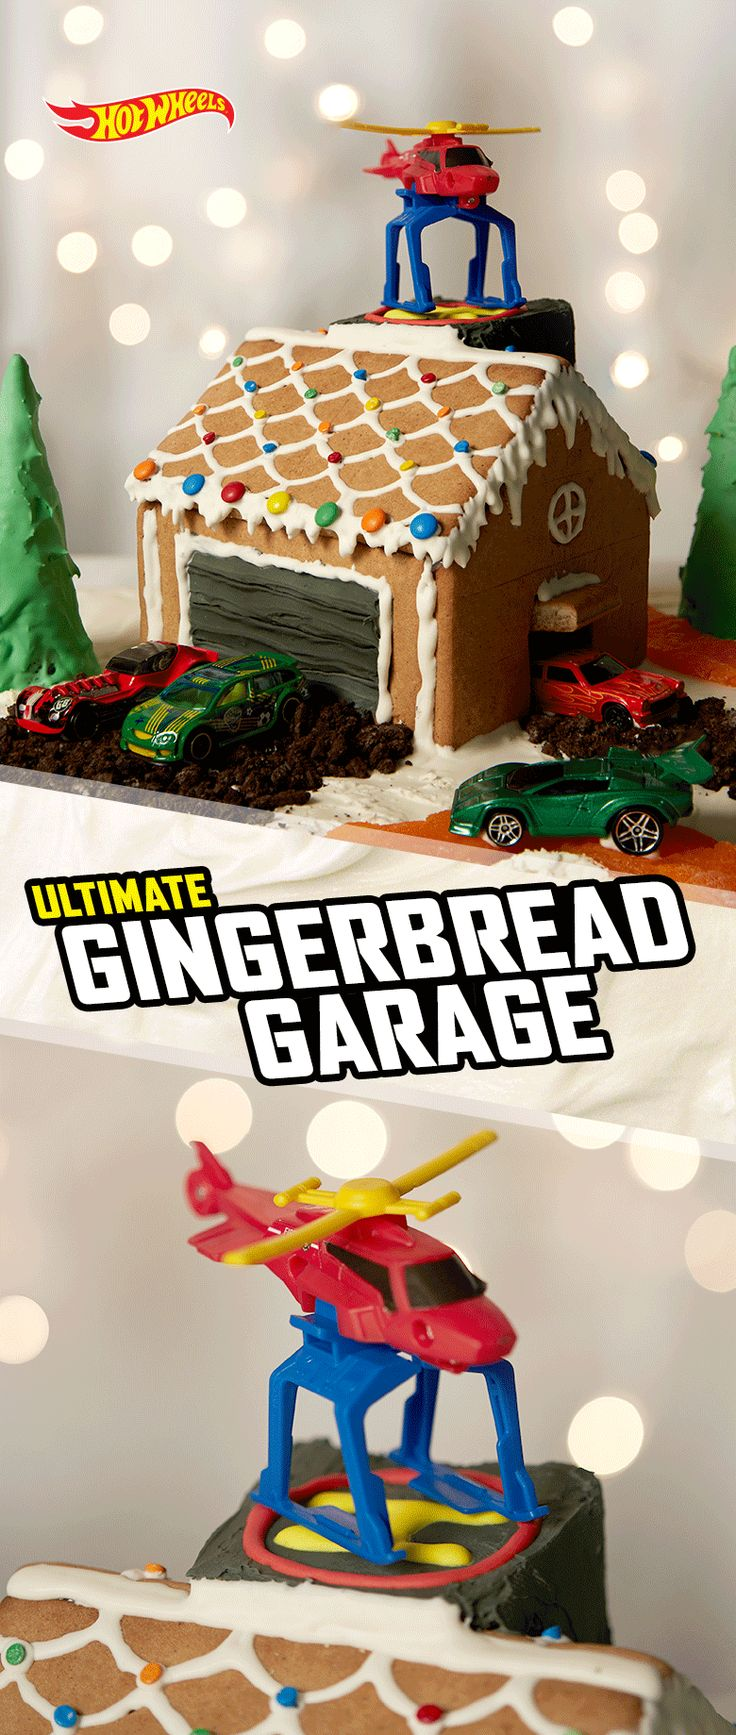 Gather your pit crew and build this Ultimate Garage-inspired gingerbread house this holiday season.